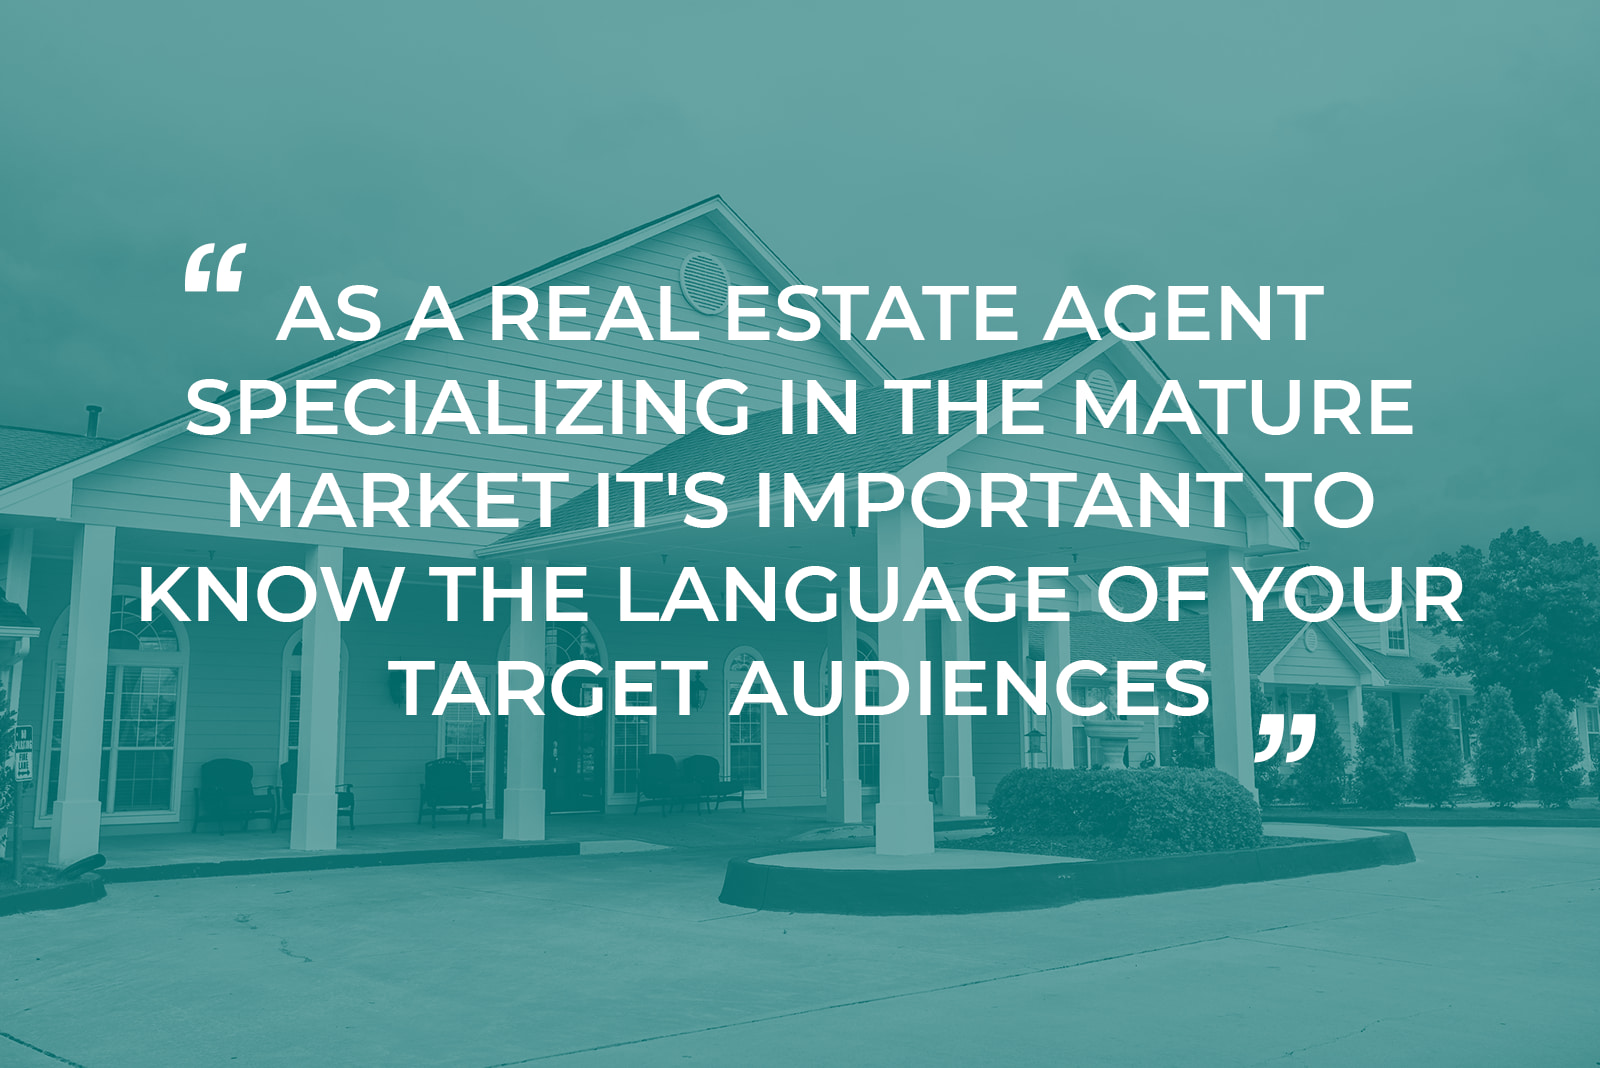 "An image of a senior living community with the text "" As a real estate agent specializing in the mature market it's important to know the language of your target audiences."" overlaid."